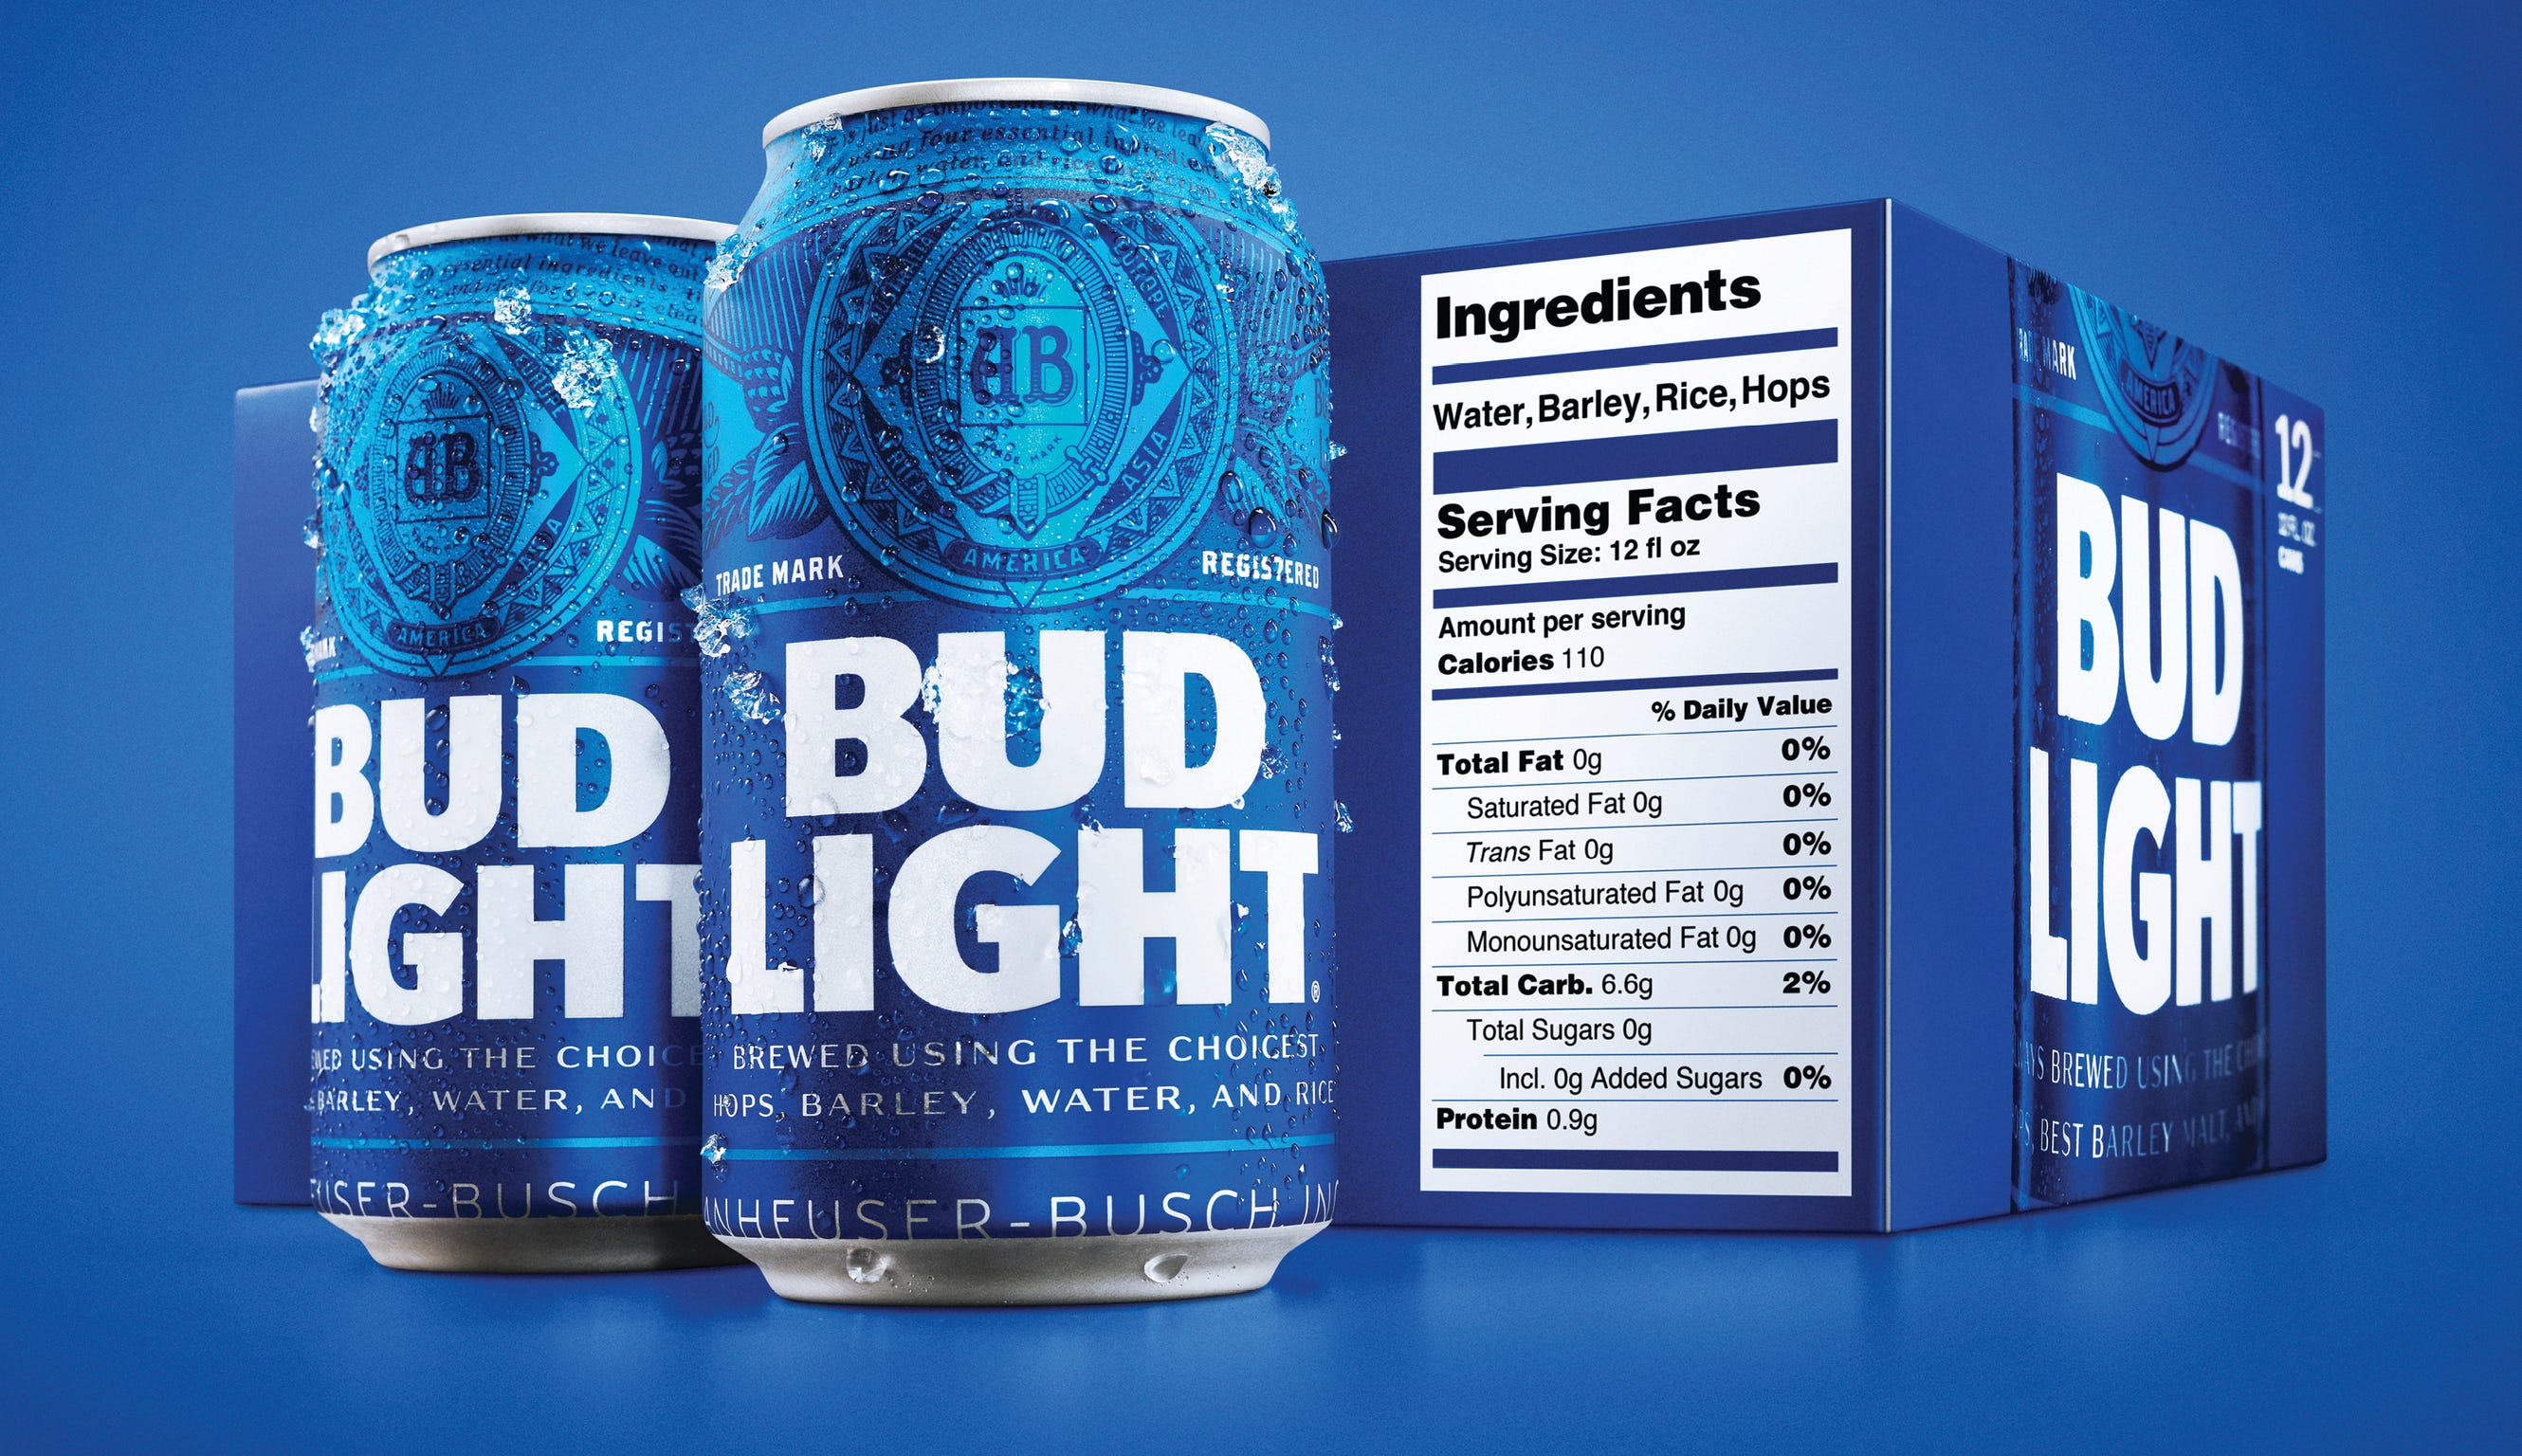 MillerCoors, Anheuser-Busch fight over farmers in aftermath of Bud Light's Super Bowl ad